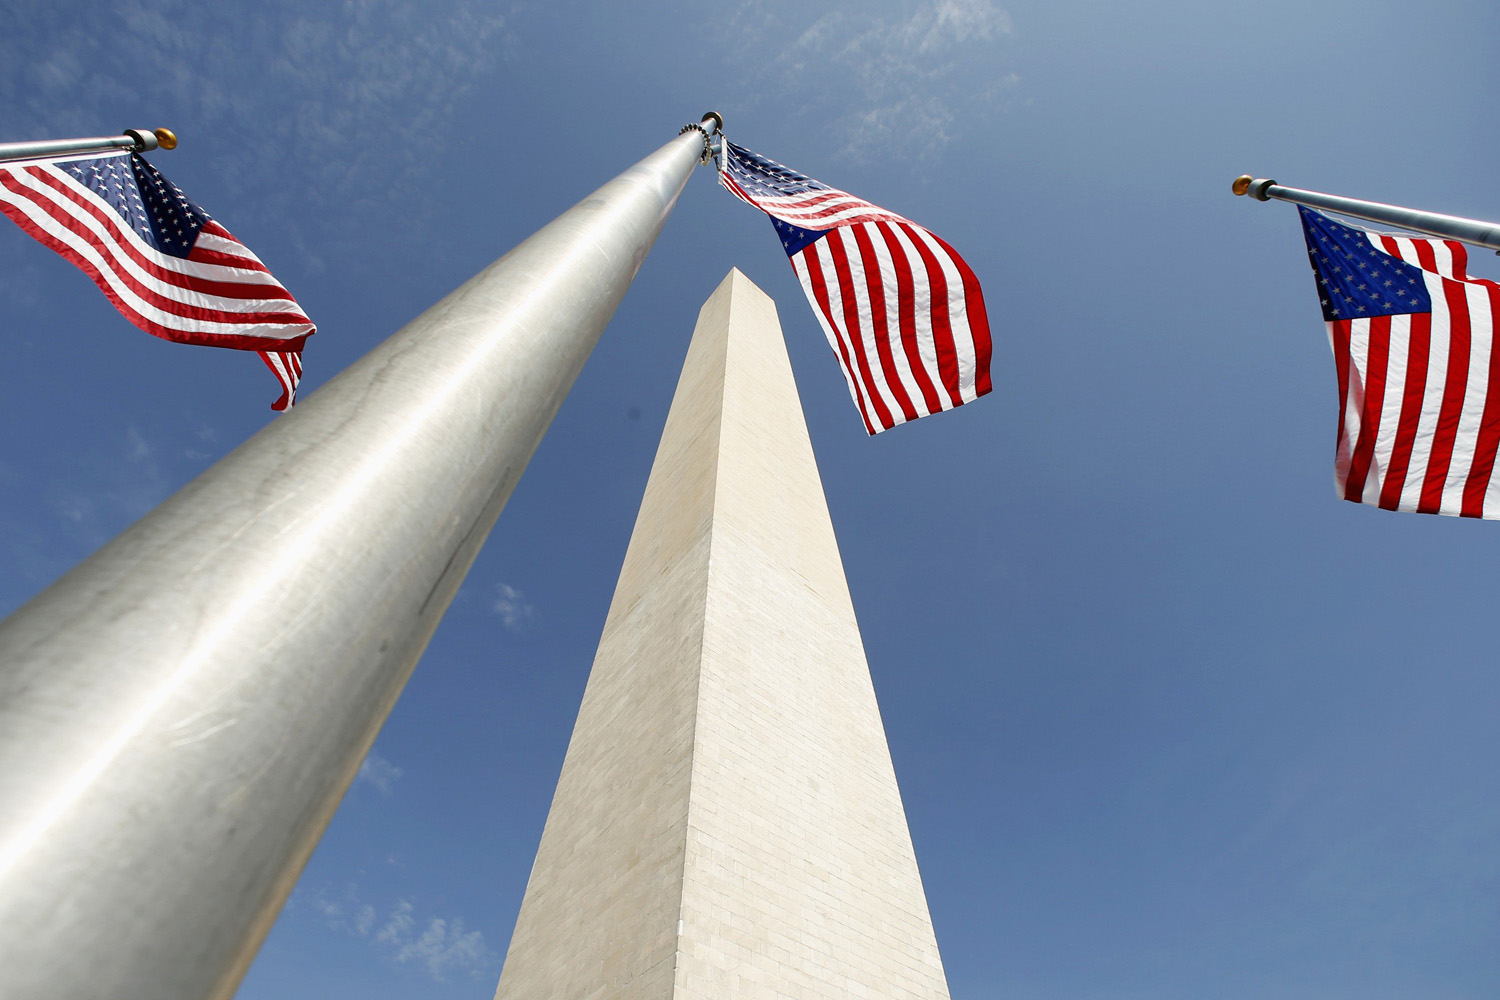 May 12, 2014. Flags flutter during the re-opening ceremony for the Washington Monument in Washington.